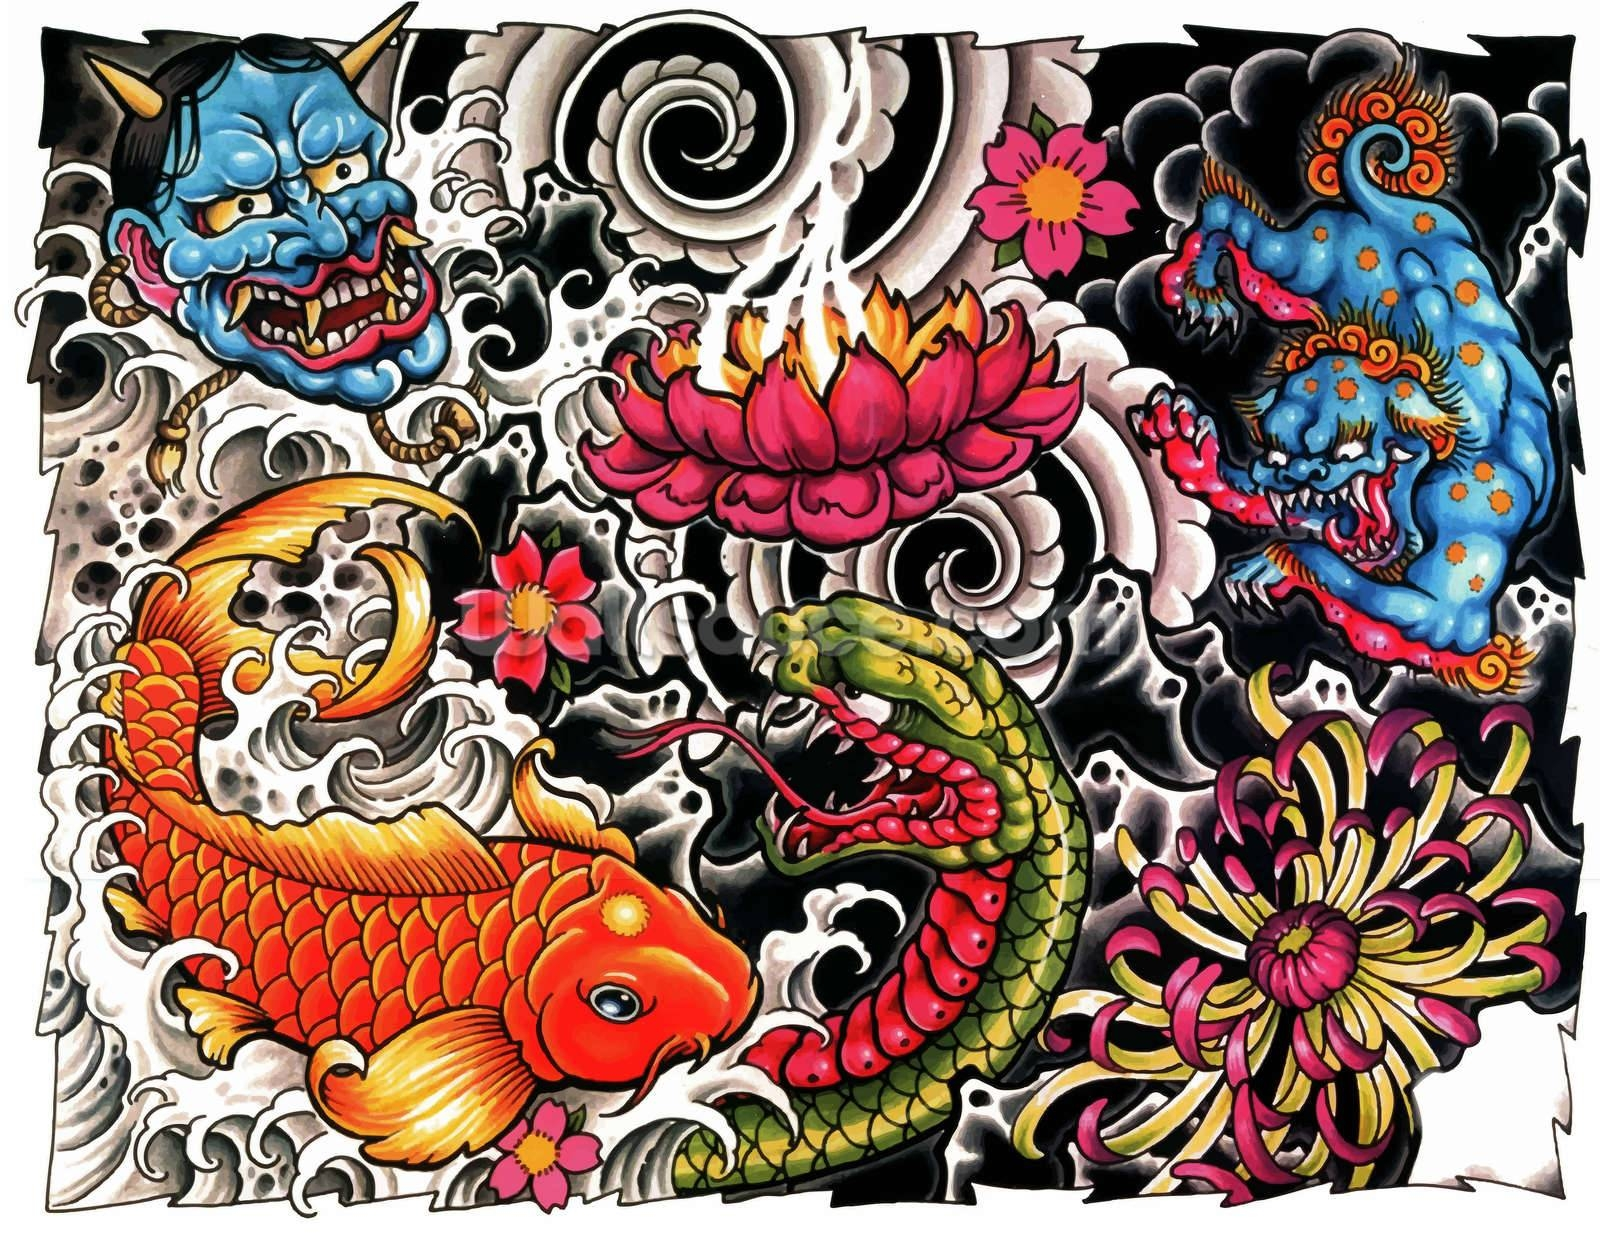 Tattoo Wallpaper Wall Mural | Wallsauce Usa Throughout Most Up To Date Tattoo Wall Art (View 14 of 20)